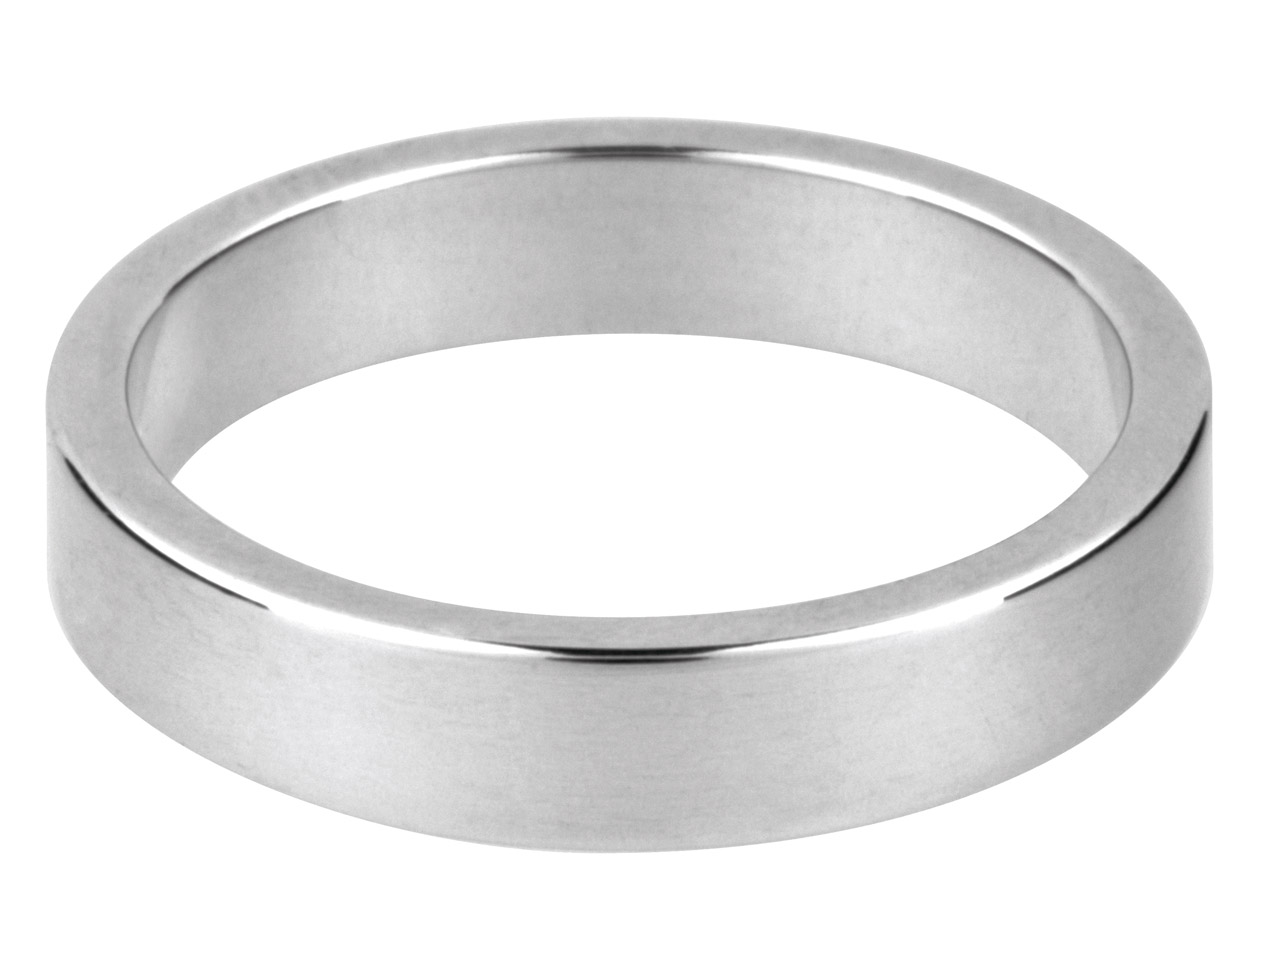 Palladium 500 Flat Wedding Ring    5.0mm Z 4.7gms Medium Weight       Hallmarked Wall Thickness 1.12mm